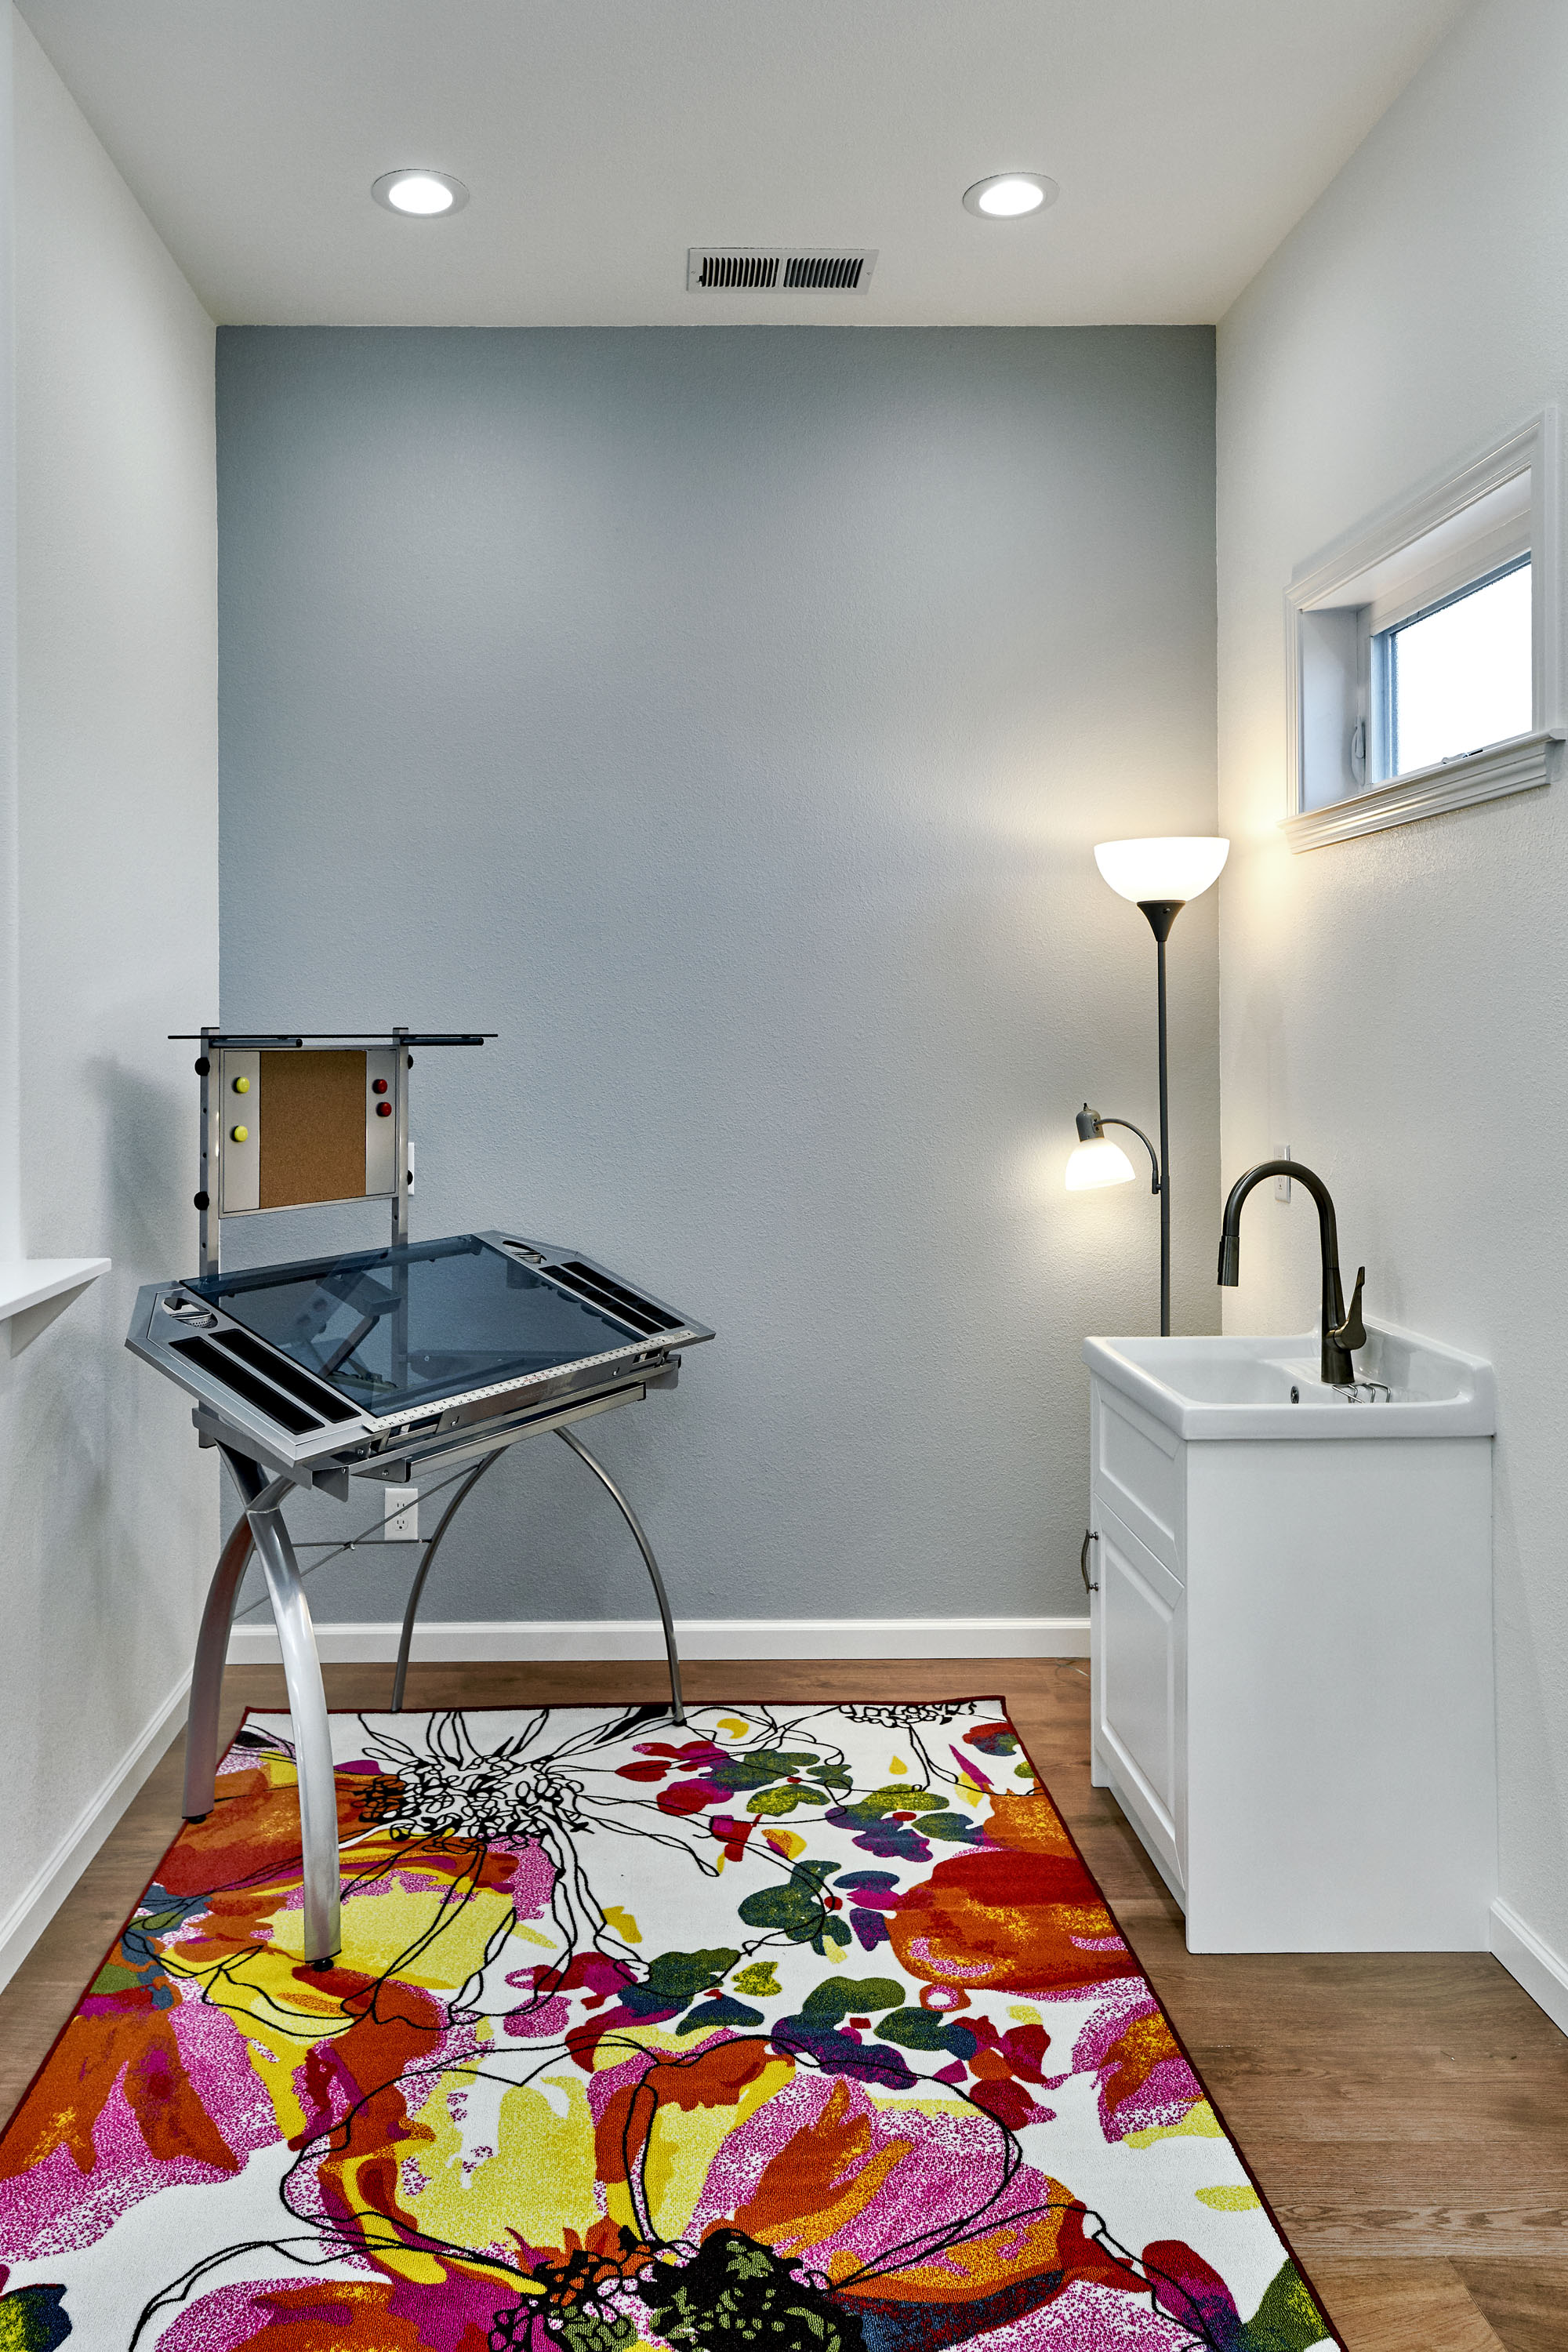 Painters studio with sink to clean brushes and palettes.